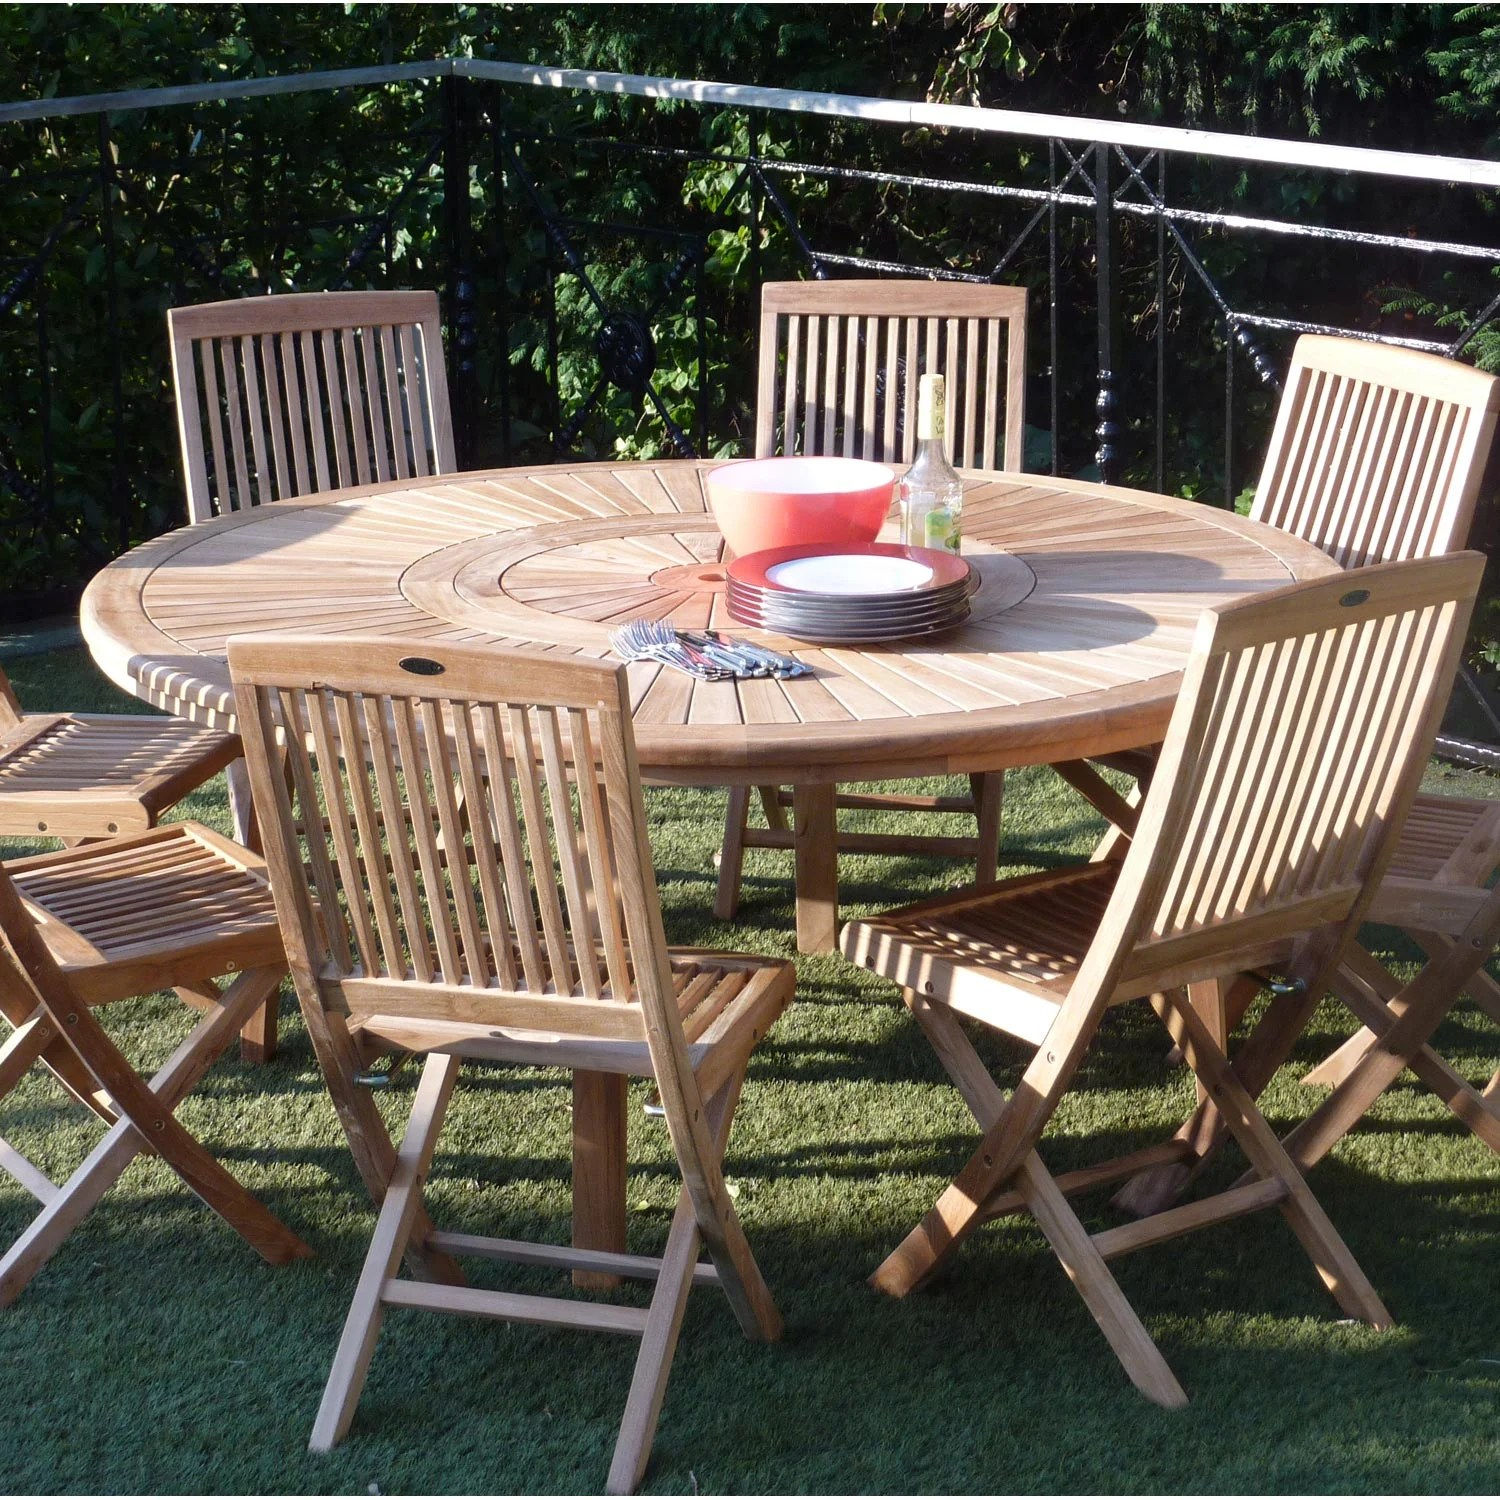 Salon De Jardin Pliable Salon De Jardin Orion Bois Naturel 8 Personnes Leroy Merlin